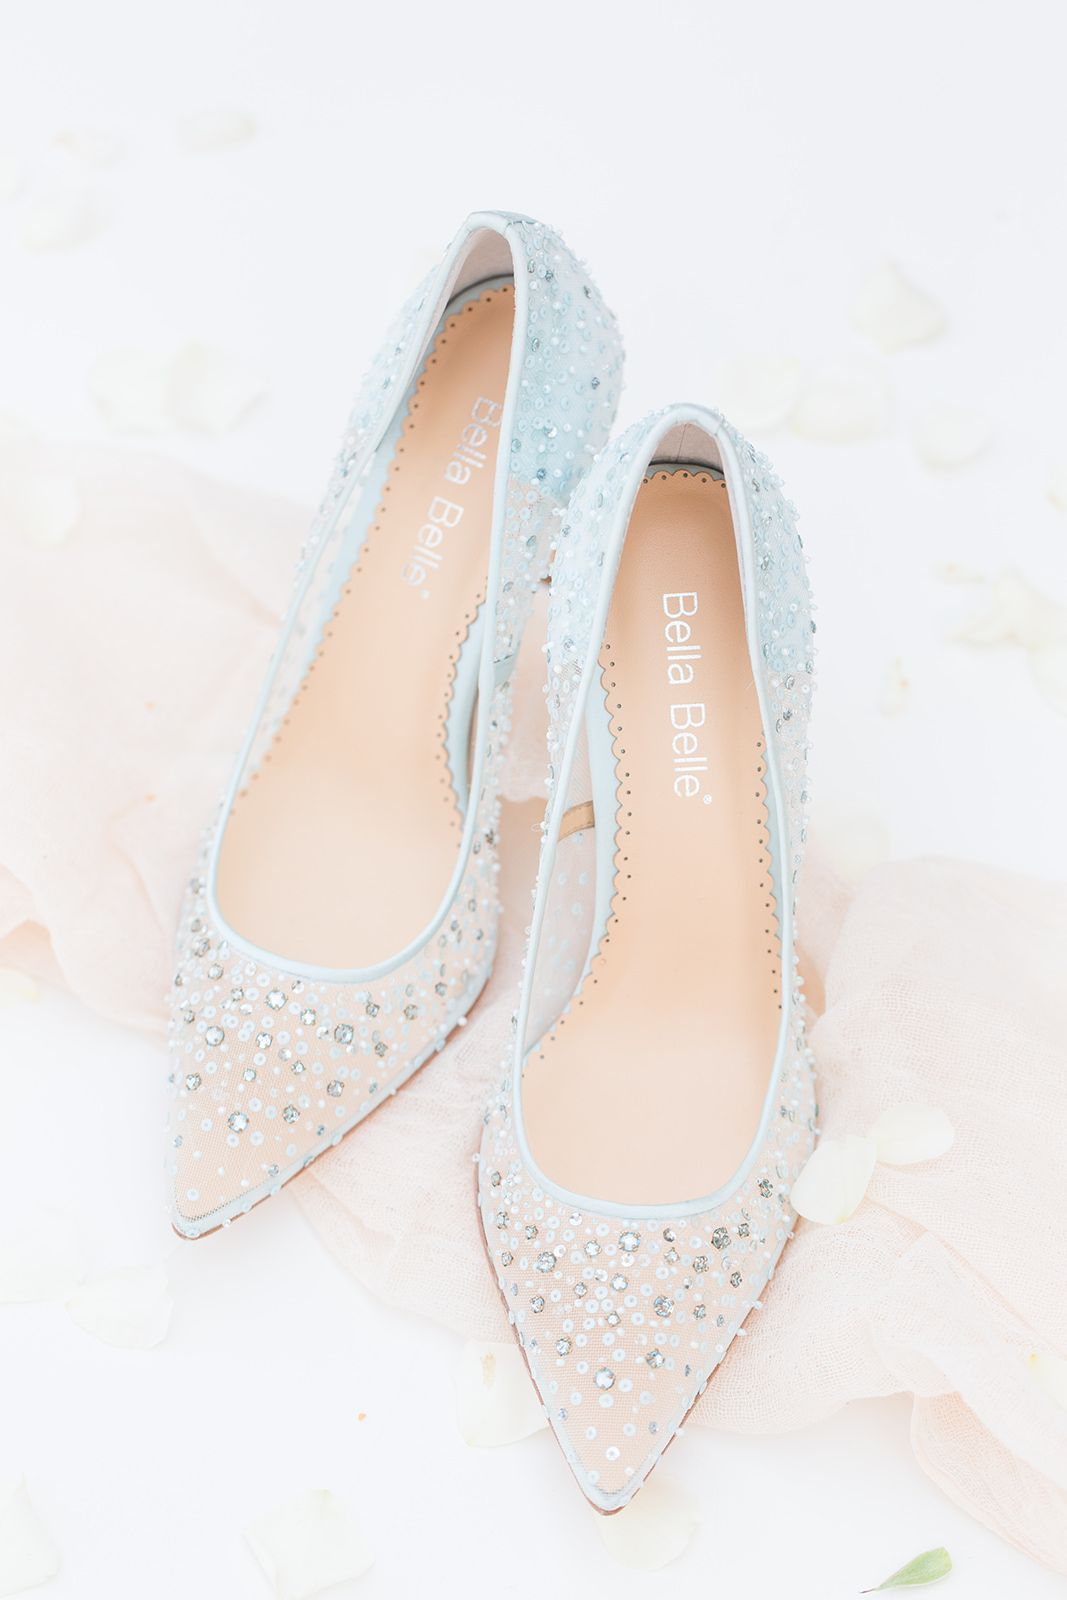 Something Blue Sequin Crystal Wedding Evening Shoes Blue Wedding Shoes Unique Wedding Shoes Wedding Shoes